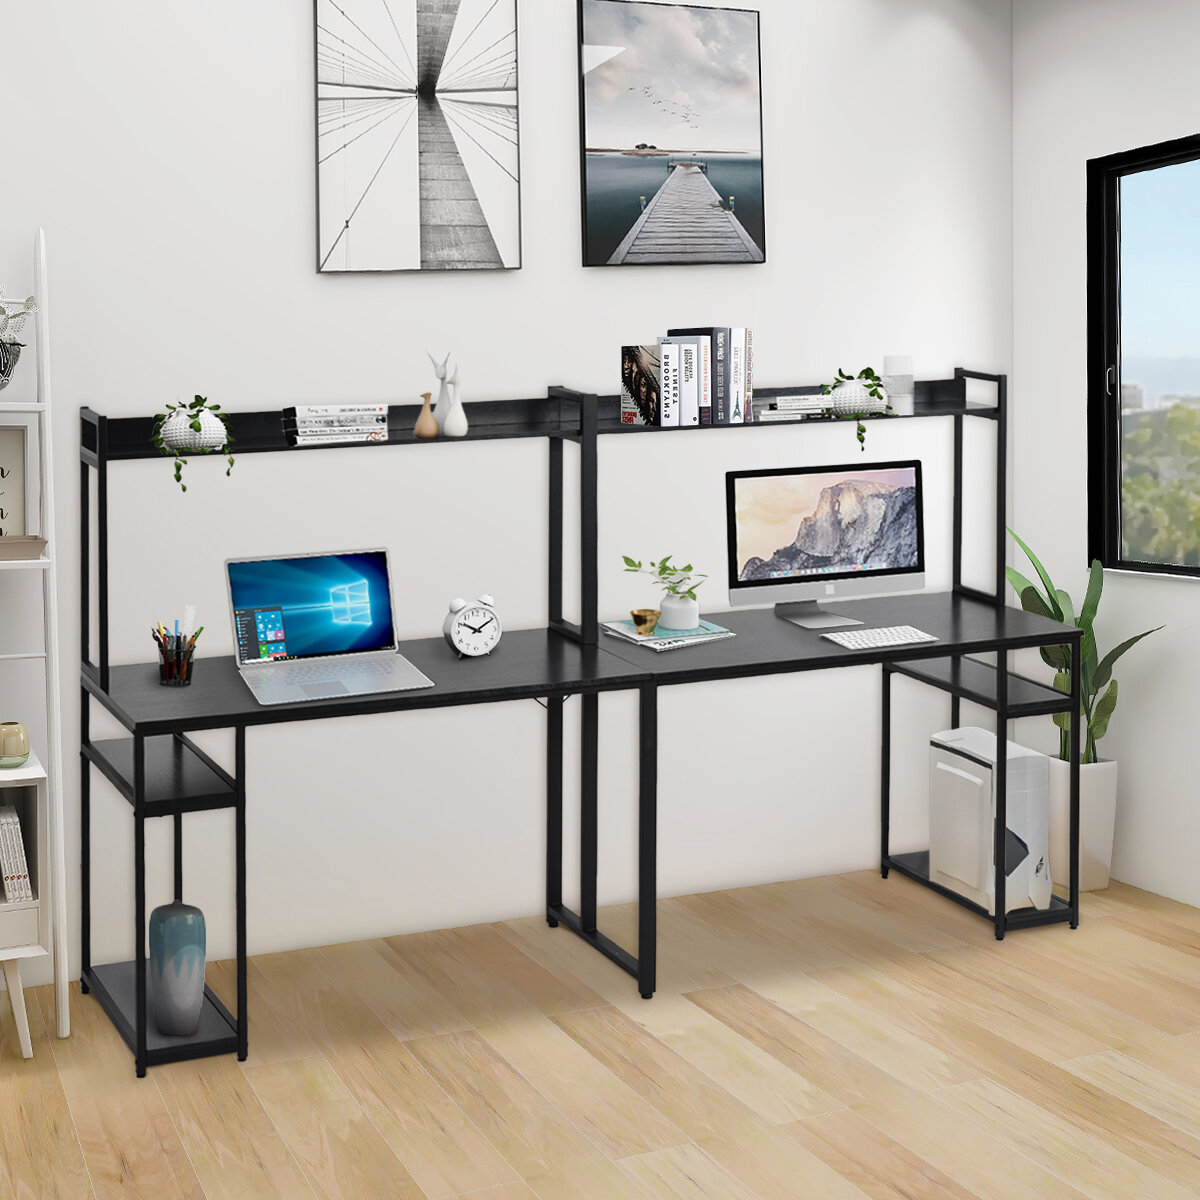 HOMESTAR 2-Piece Laptop Desk and 4-Shelf Bookcase Distressed Mocha